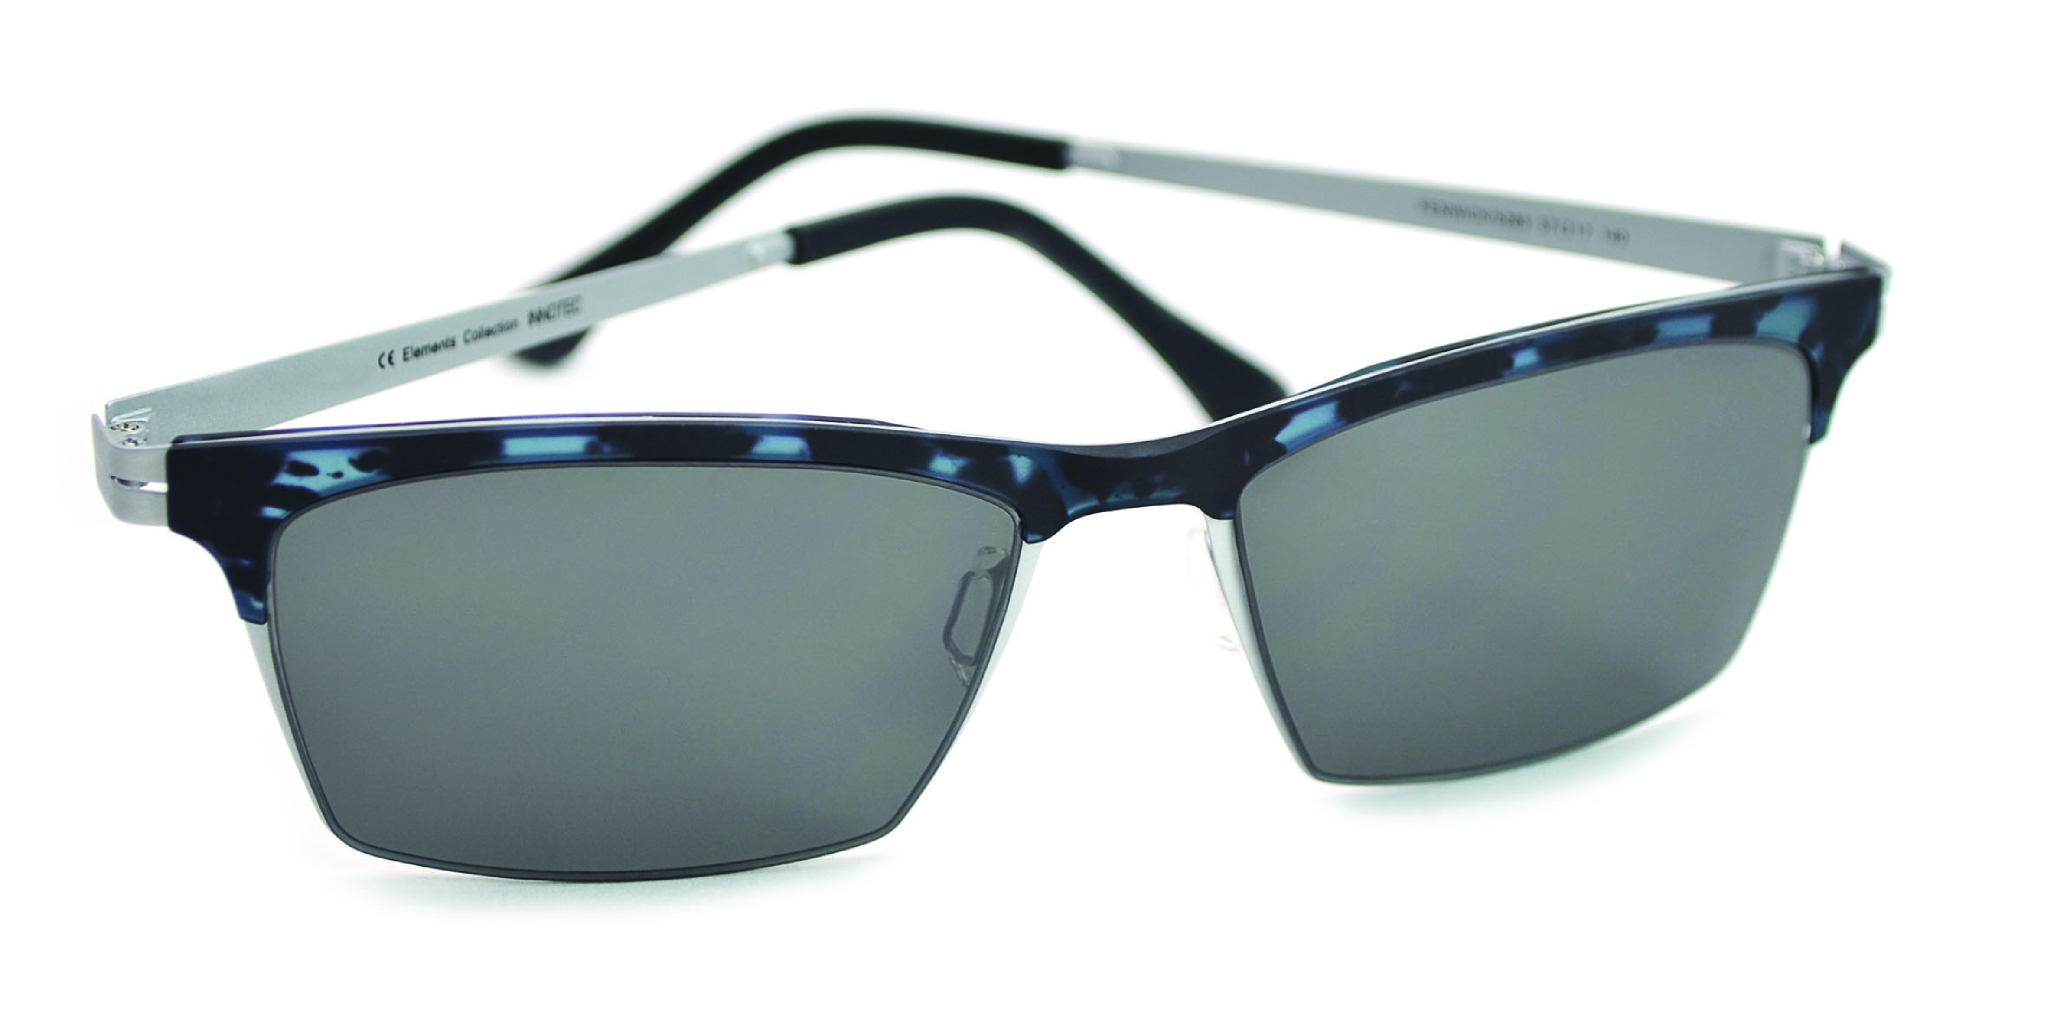 Lunette Solaire Ray Ban Femme 2015 « Heritage Malta d9244d4050f7